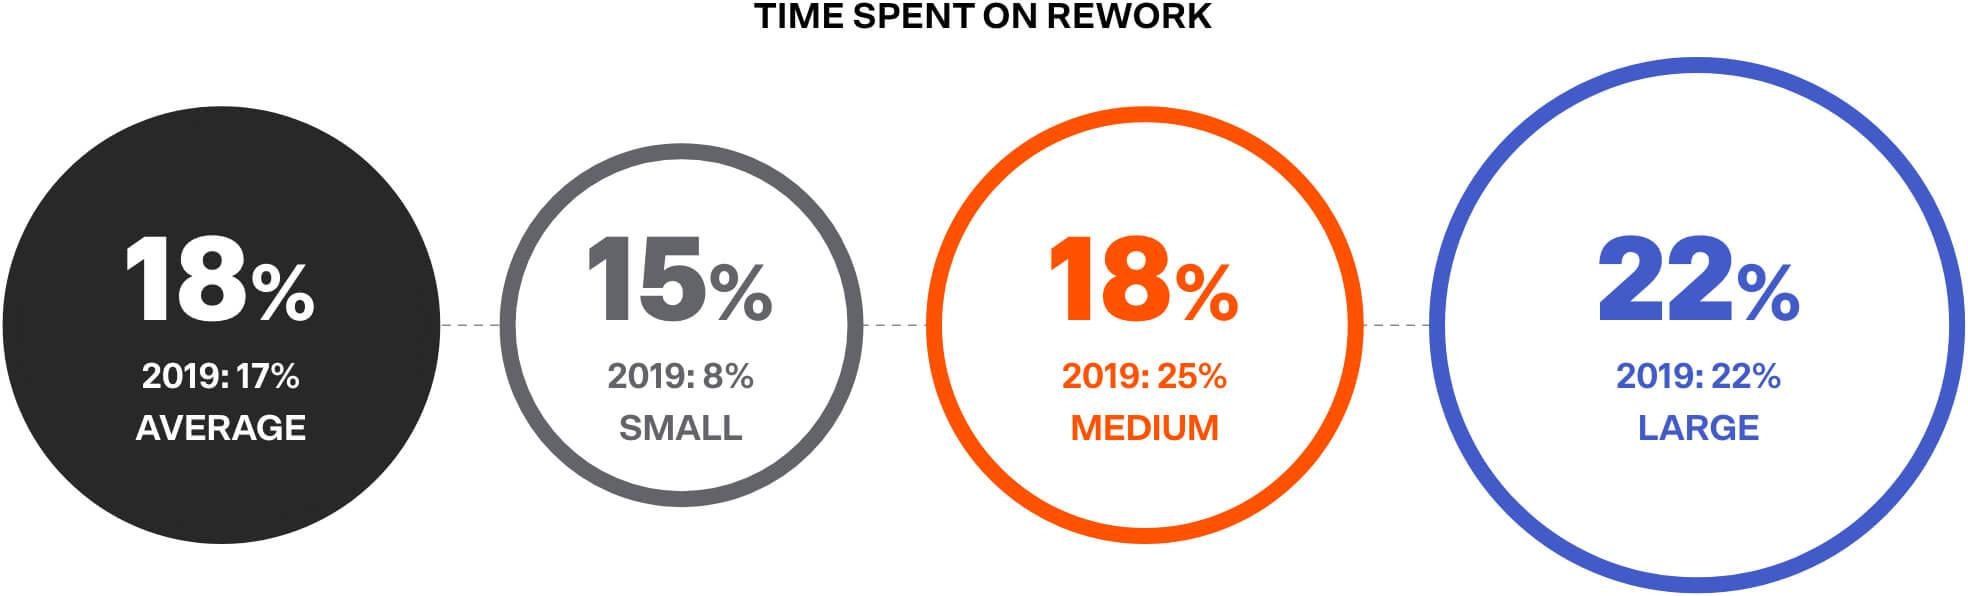 Average time spent on rework is 18%